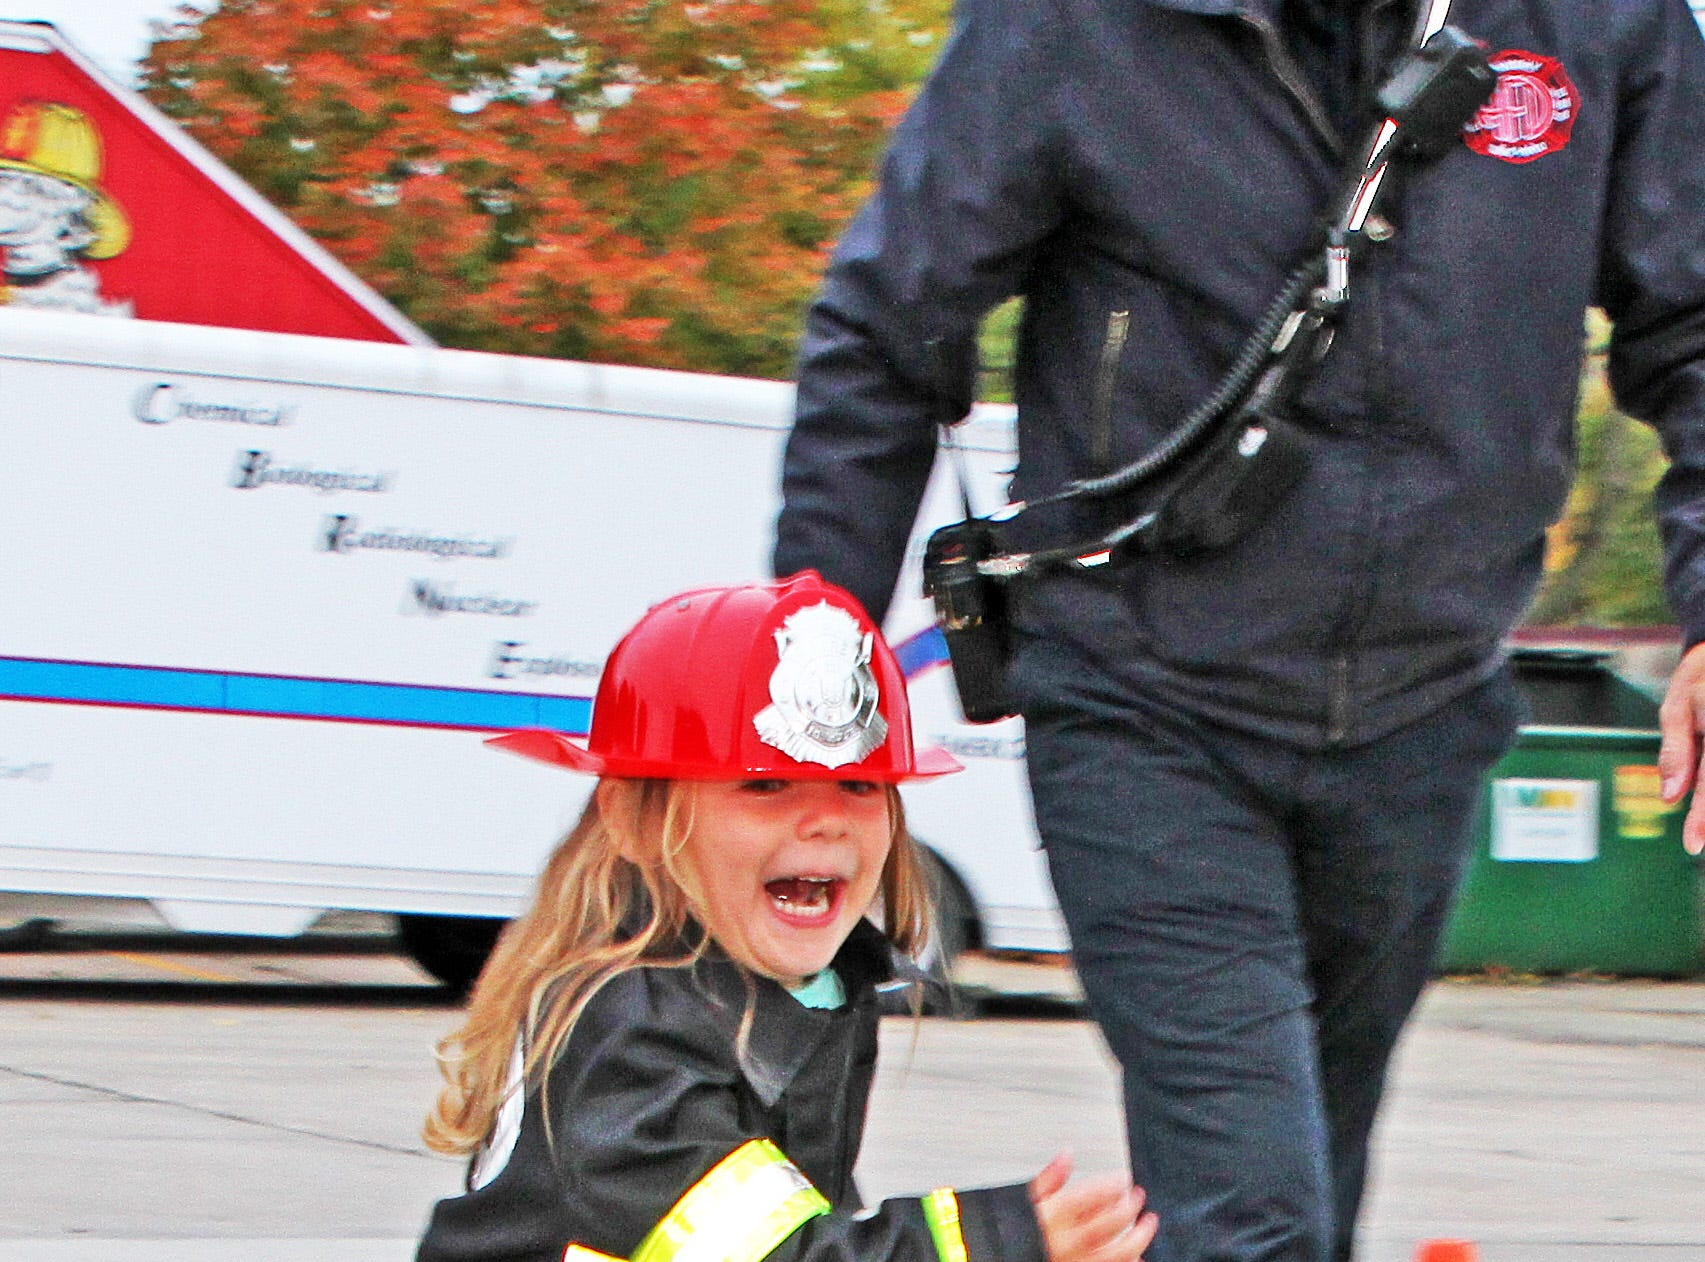 Adelyn Gervais, 3, of Ankeny sprints to the next stage of the Kids' Firefighter Challenge during the Ankeny Fire Department's Fire Prevention Week Open House on Wednesday,  Oct. 10, 2018 at Fire Station #1, 120 N.W. Ash Dr in Ankeny. The Open House includes a variety of educational, family-oriented hands-on activities for all ages. Residents can learn more about the power of fire prevention and technologies available to protect their own families from fire.